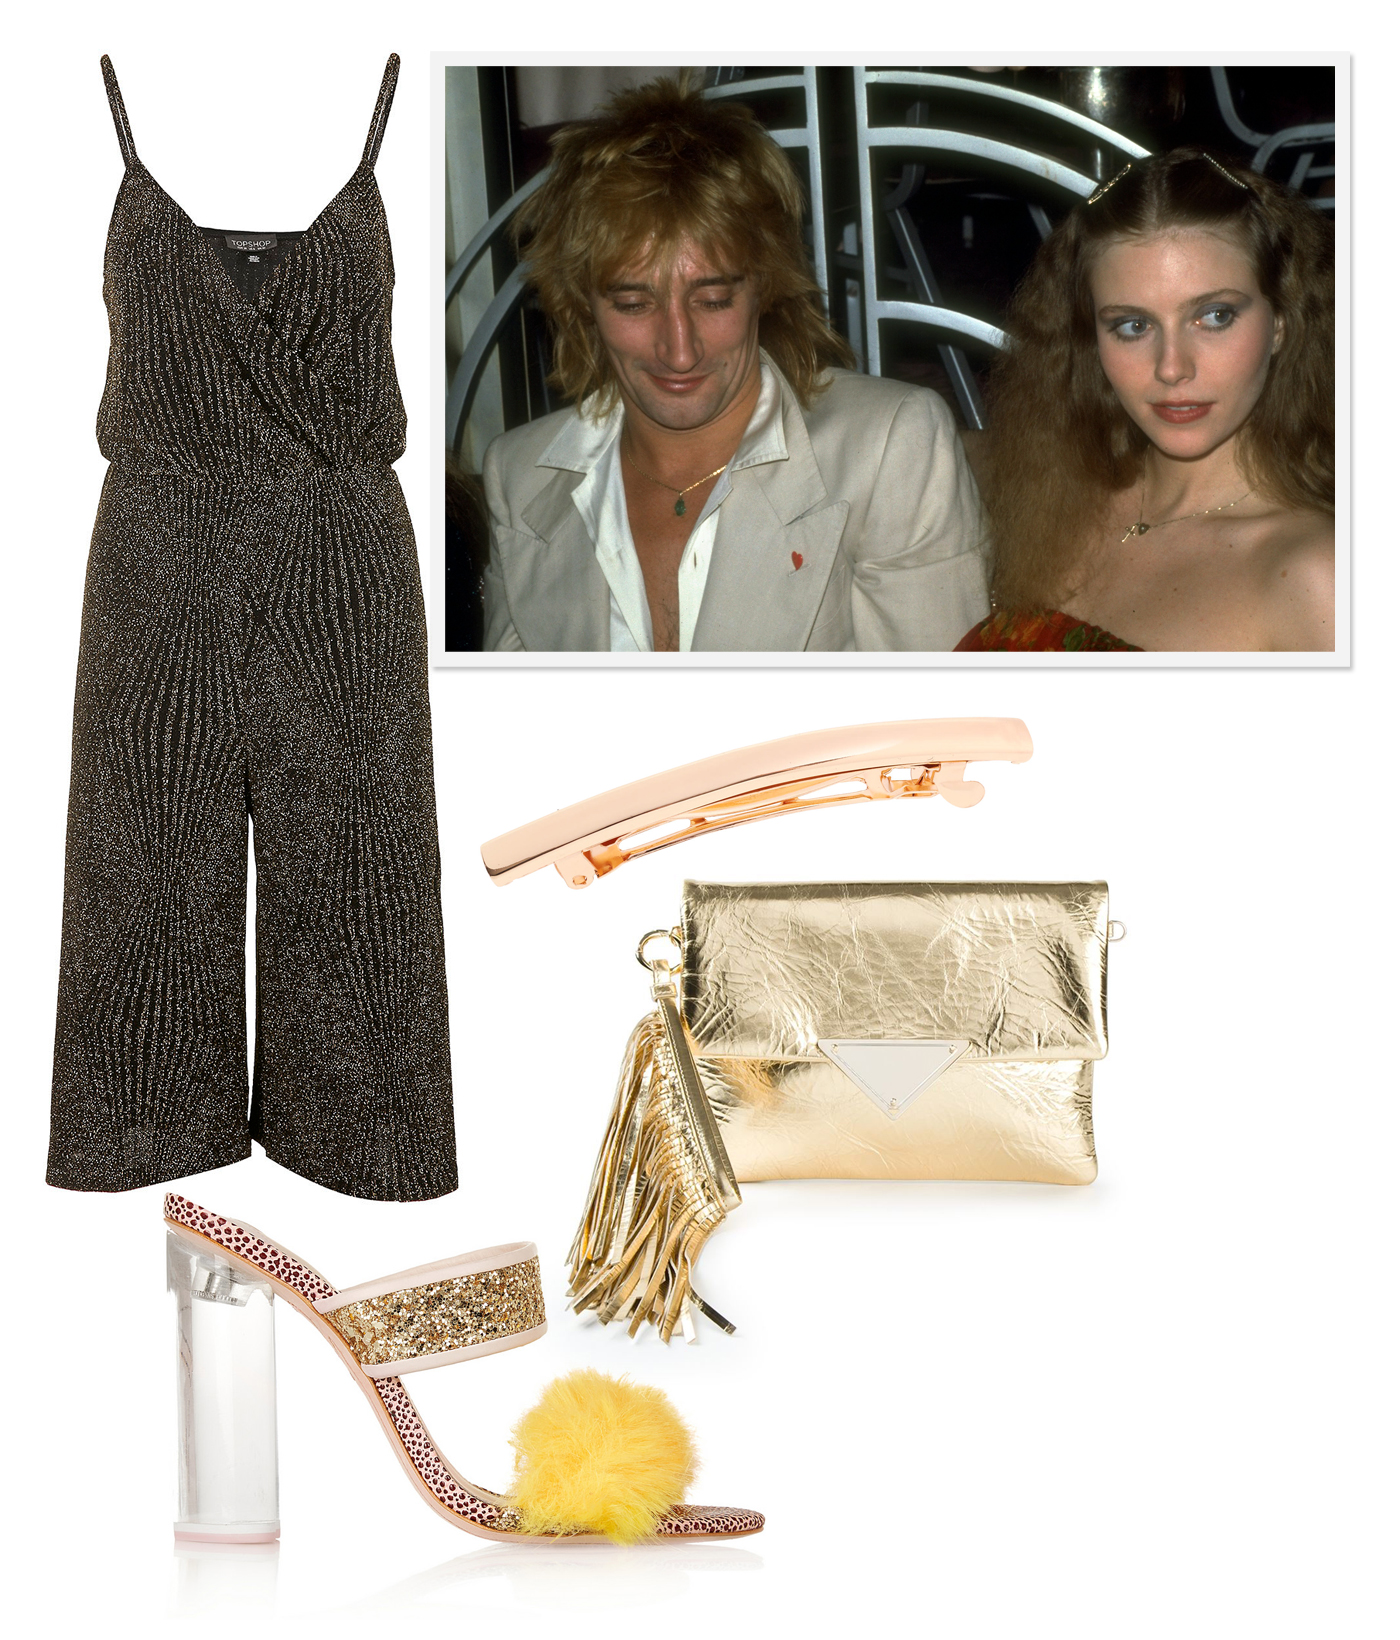 party-outfit-ideas-03.jpg